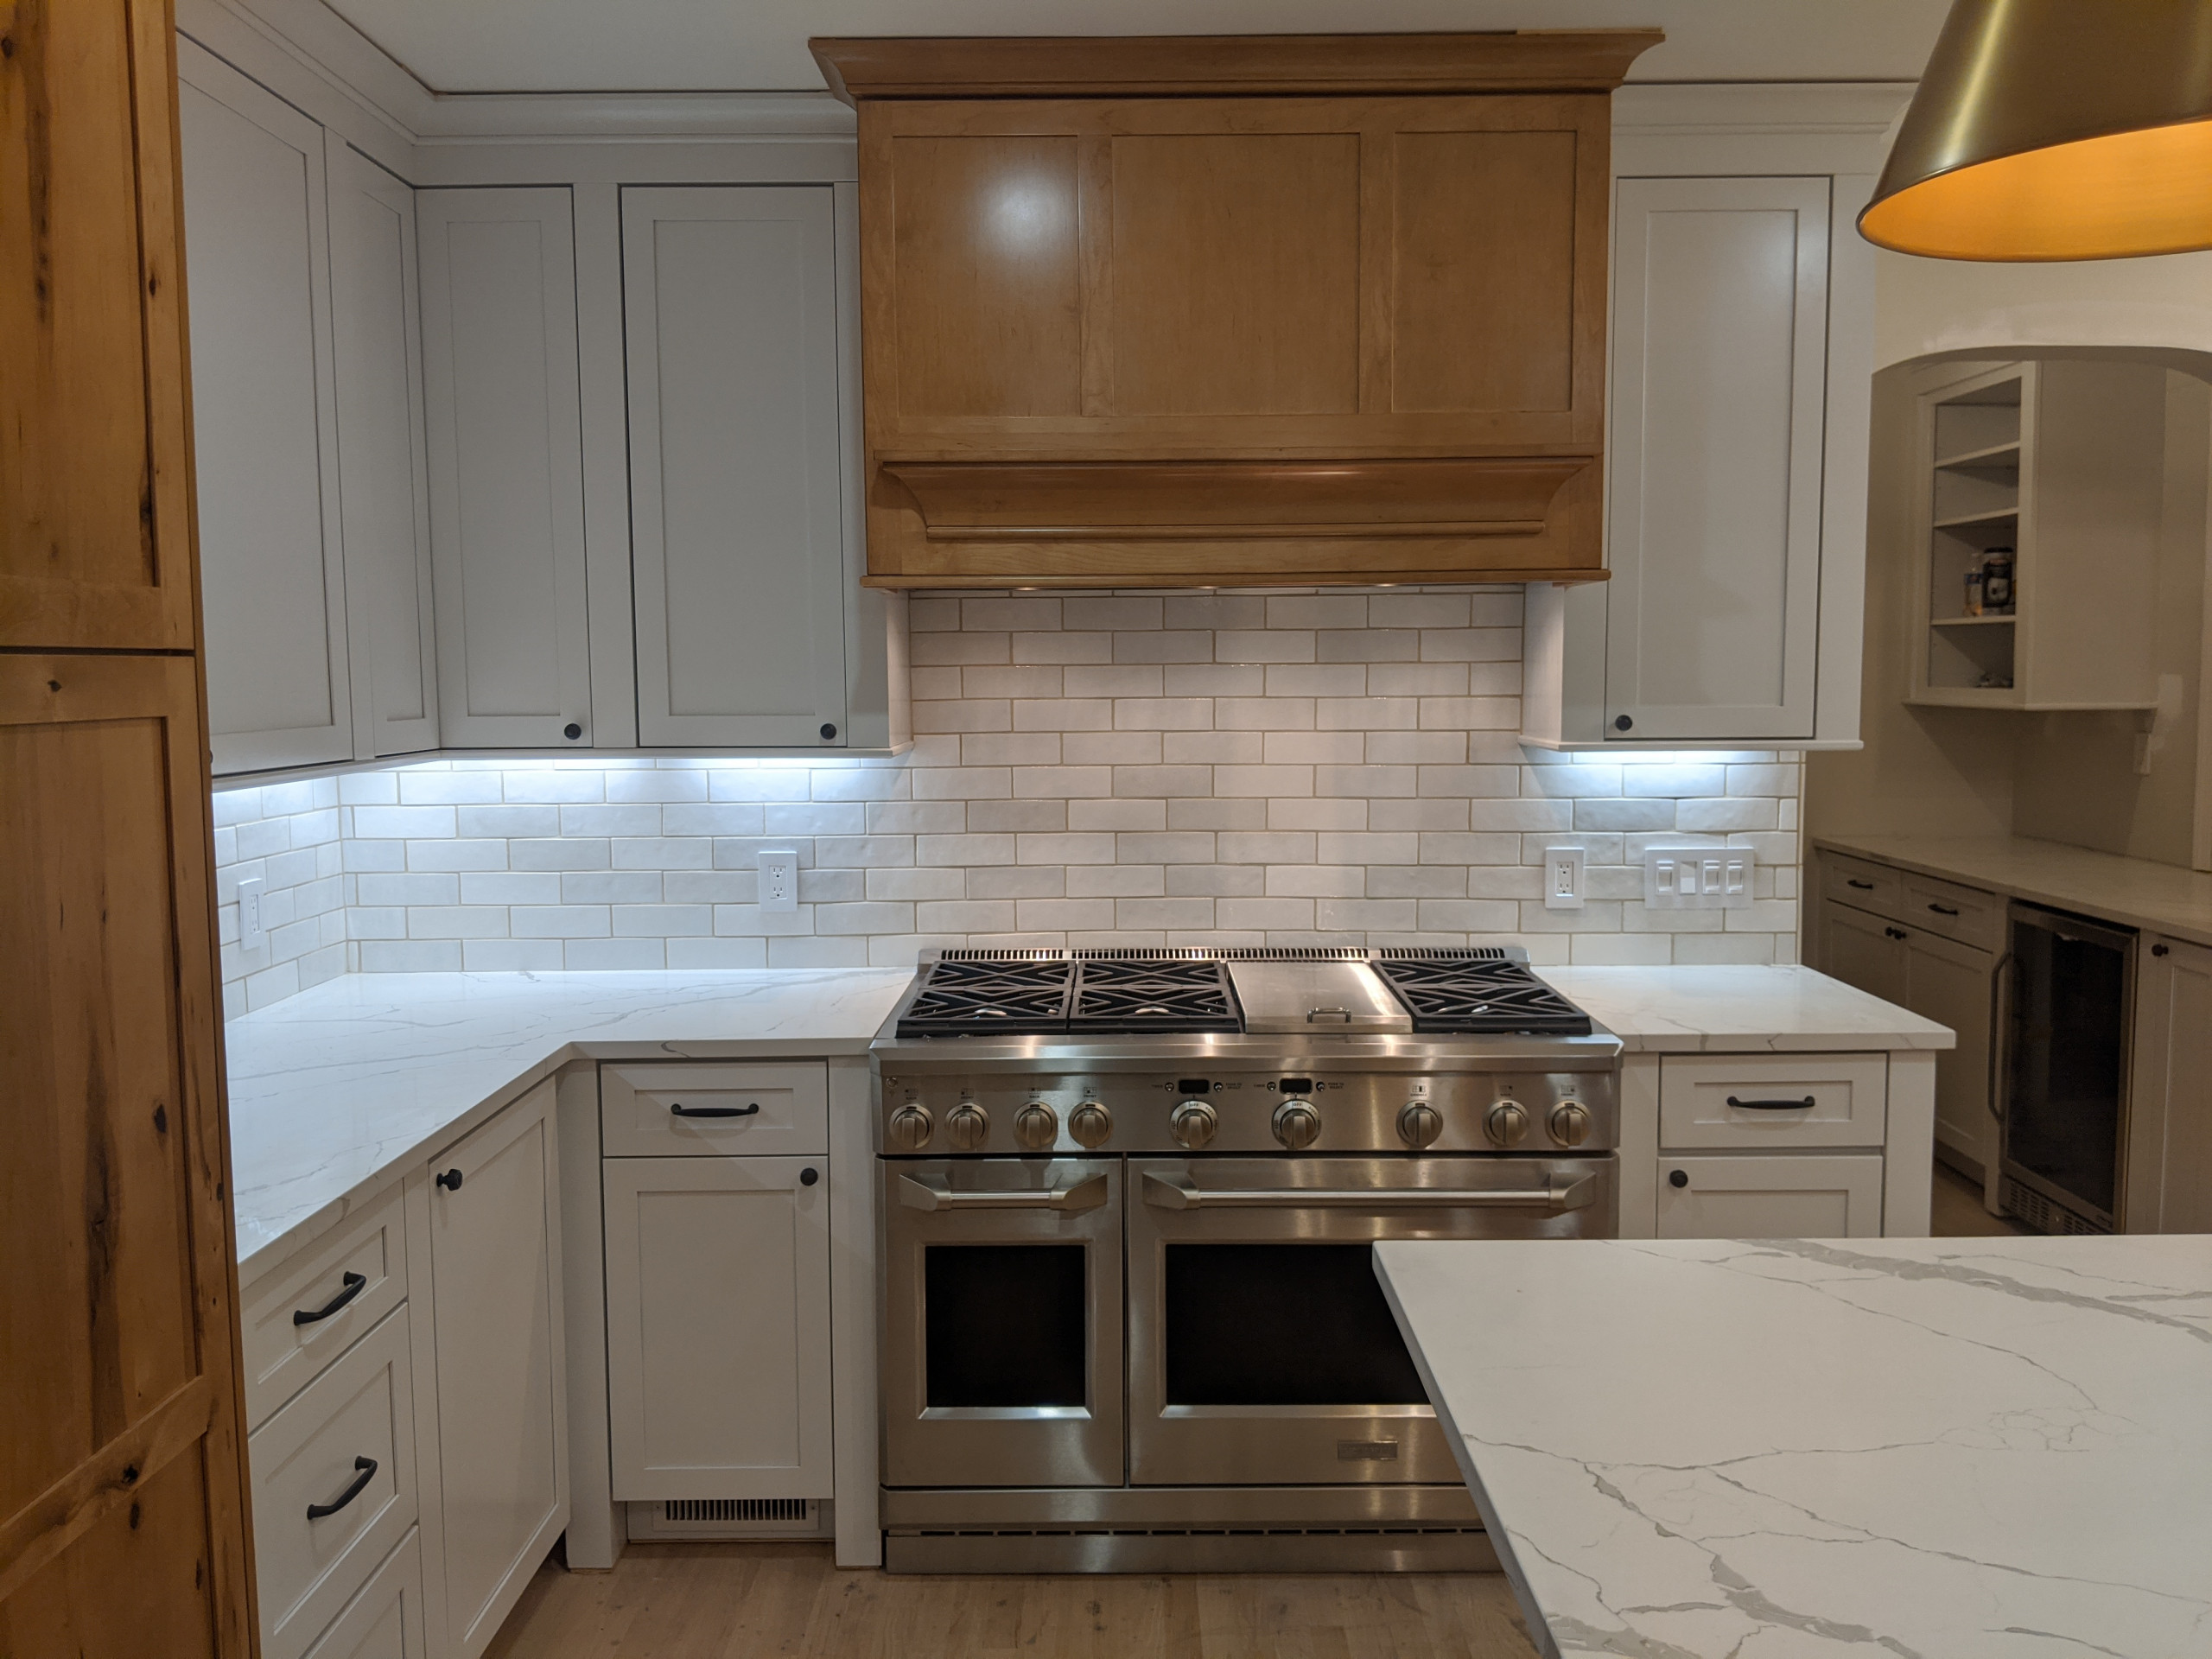 Baltimore Kitchen Remodel in the Homeland Neighborhood